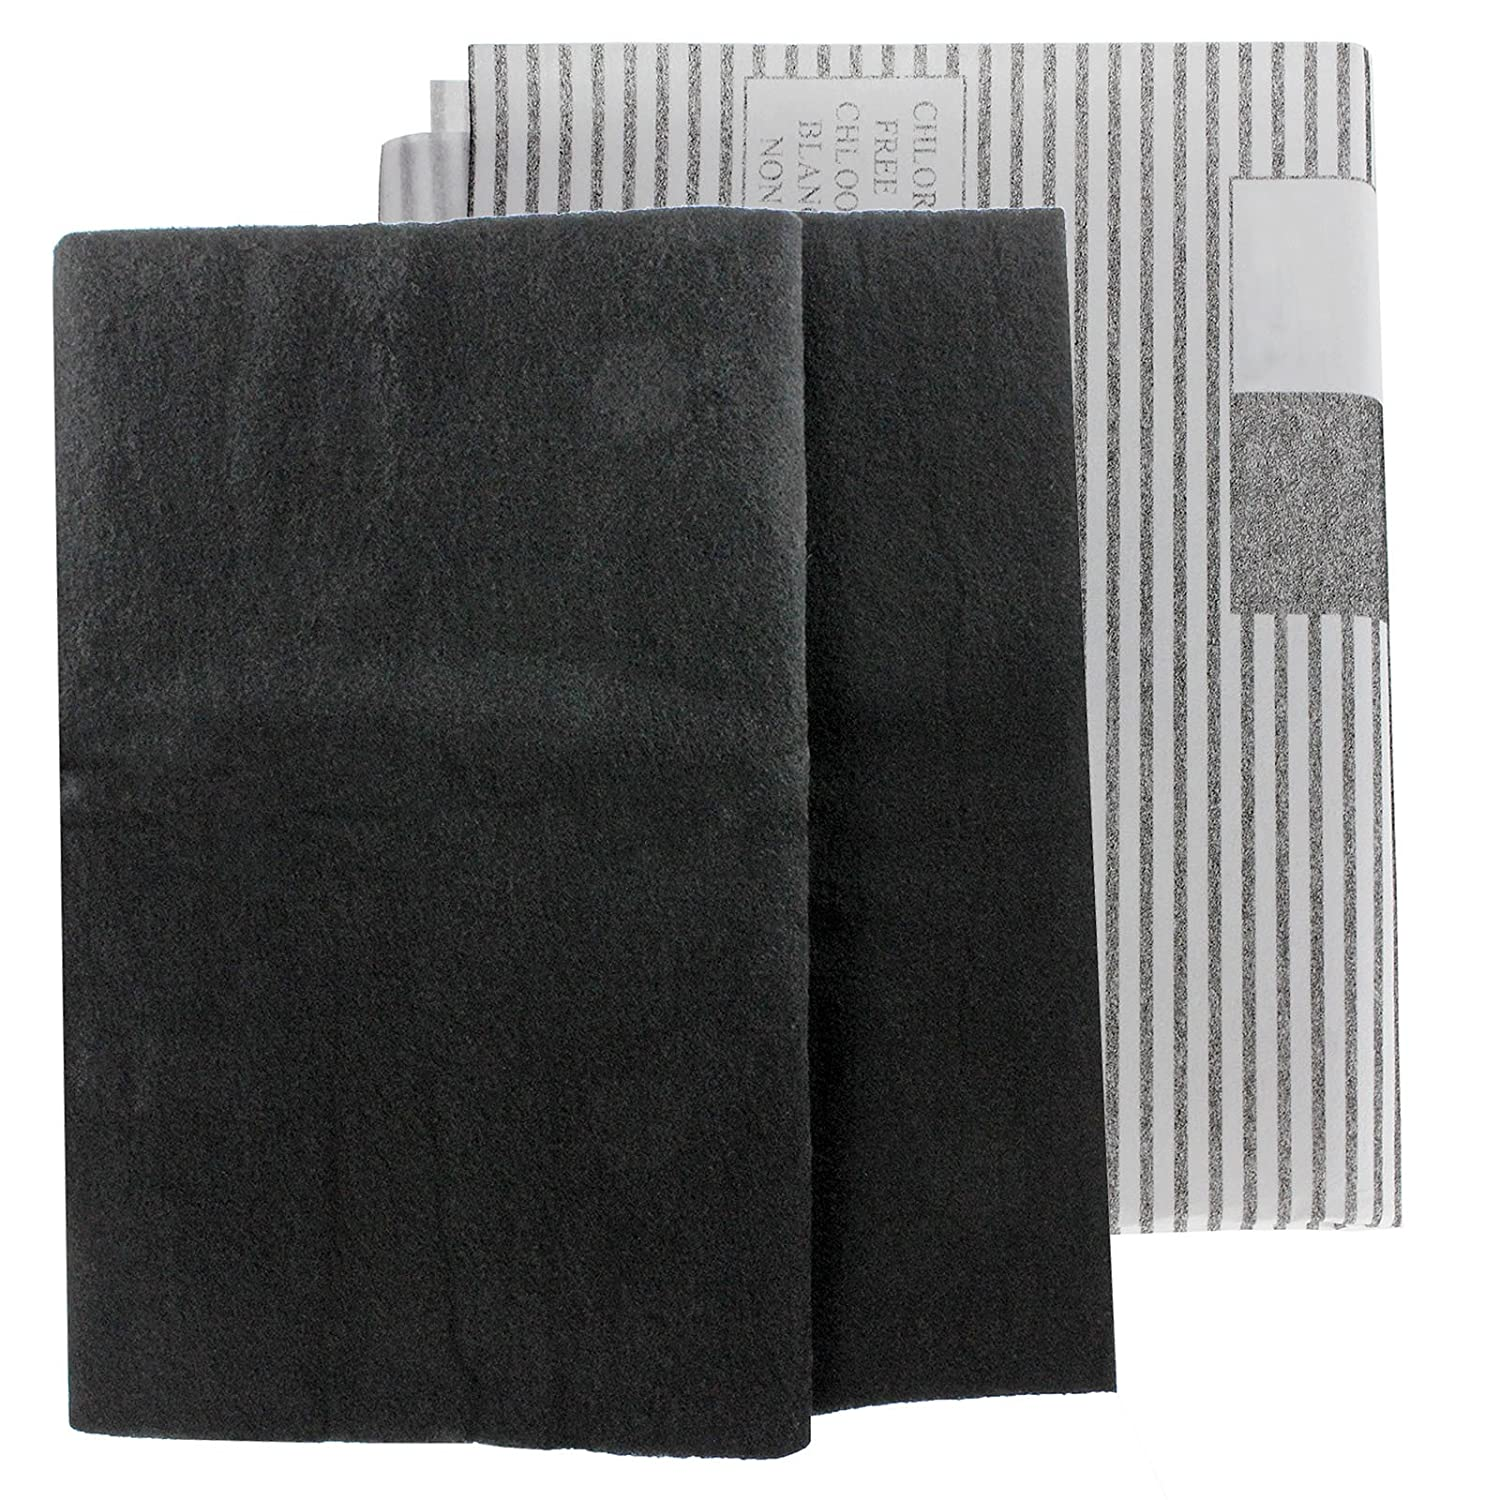 SPARES2GO Large Cooker Hood Grease Filters for Blanco Vent Extractor Fans (2 x Filter, Cut to Size - 100 cm x 47 cm)